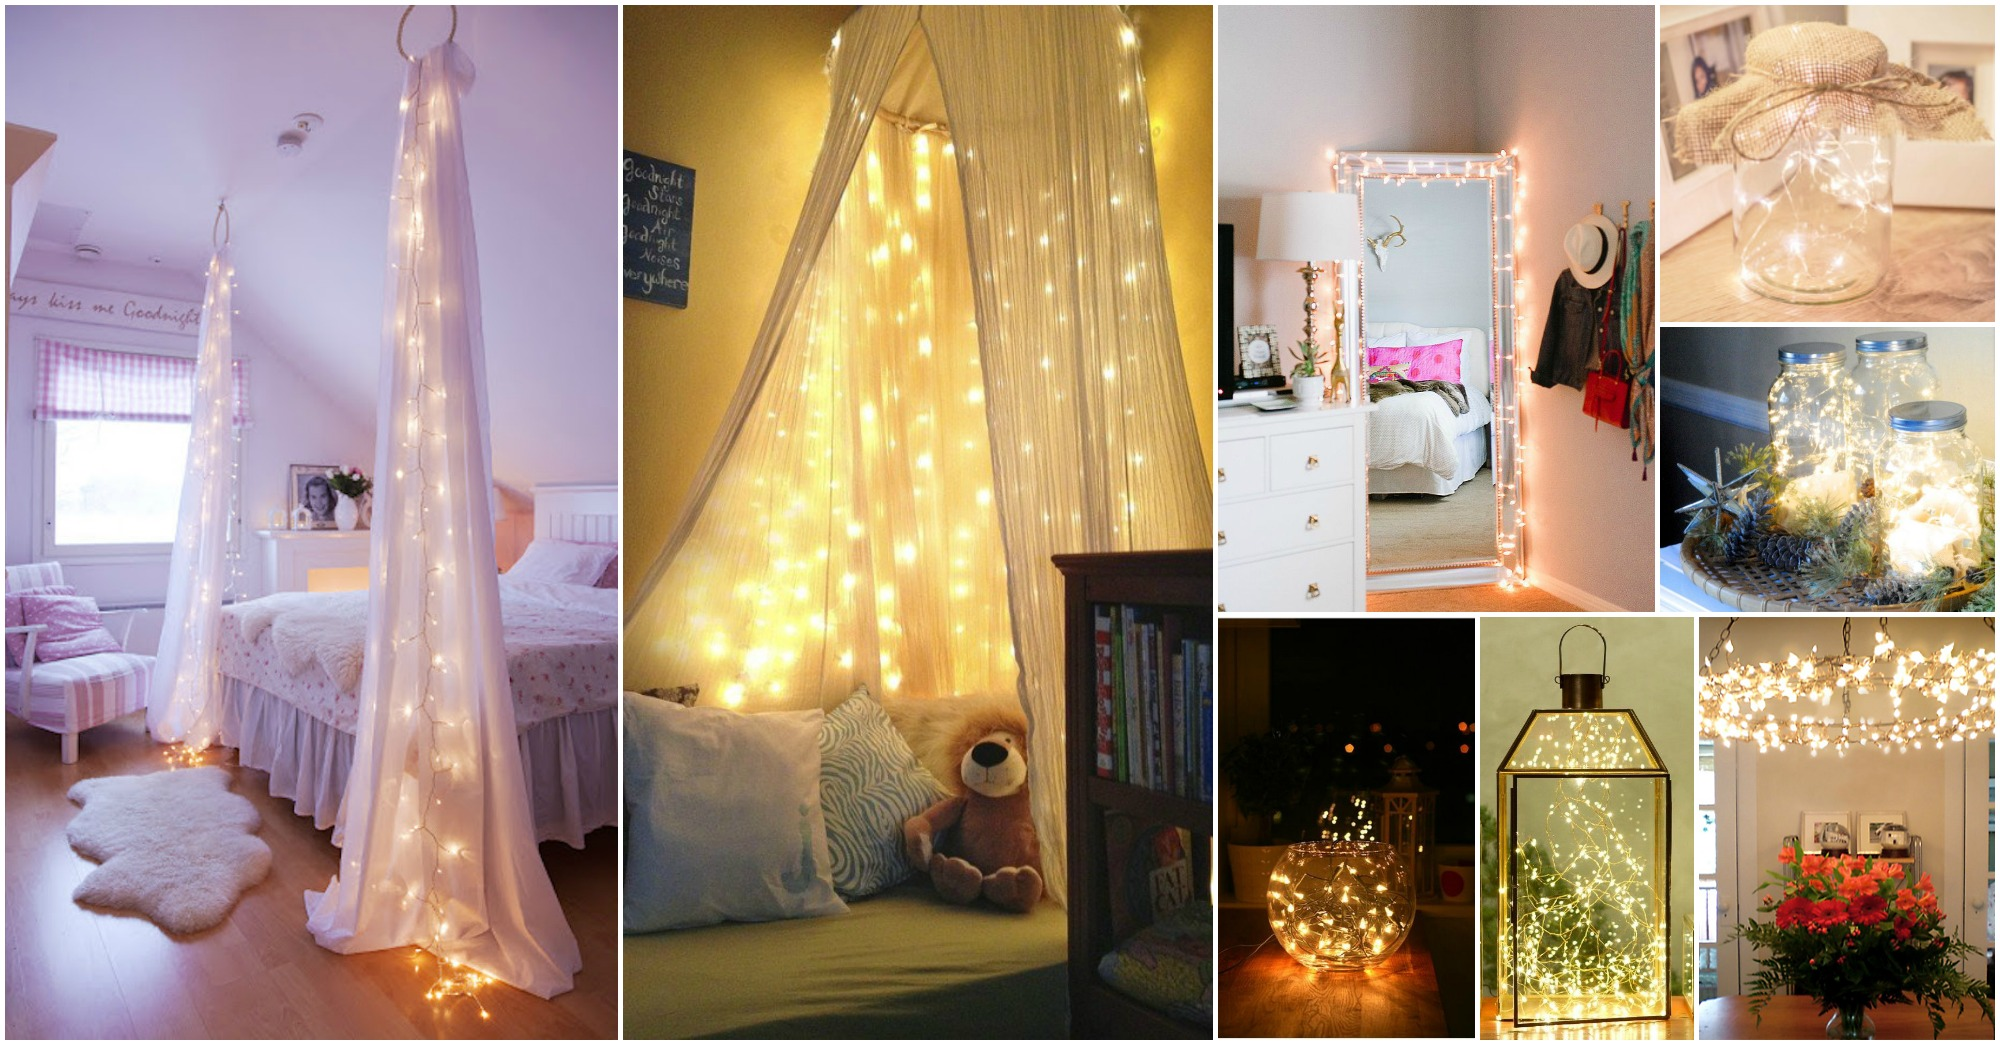 55 awesome string light diys for any occasion. Black Bedroom Furniture Sets. Home Design Ideas